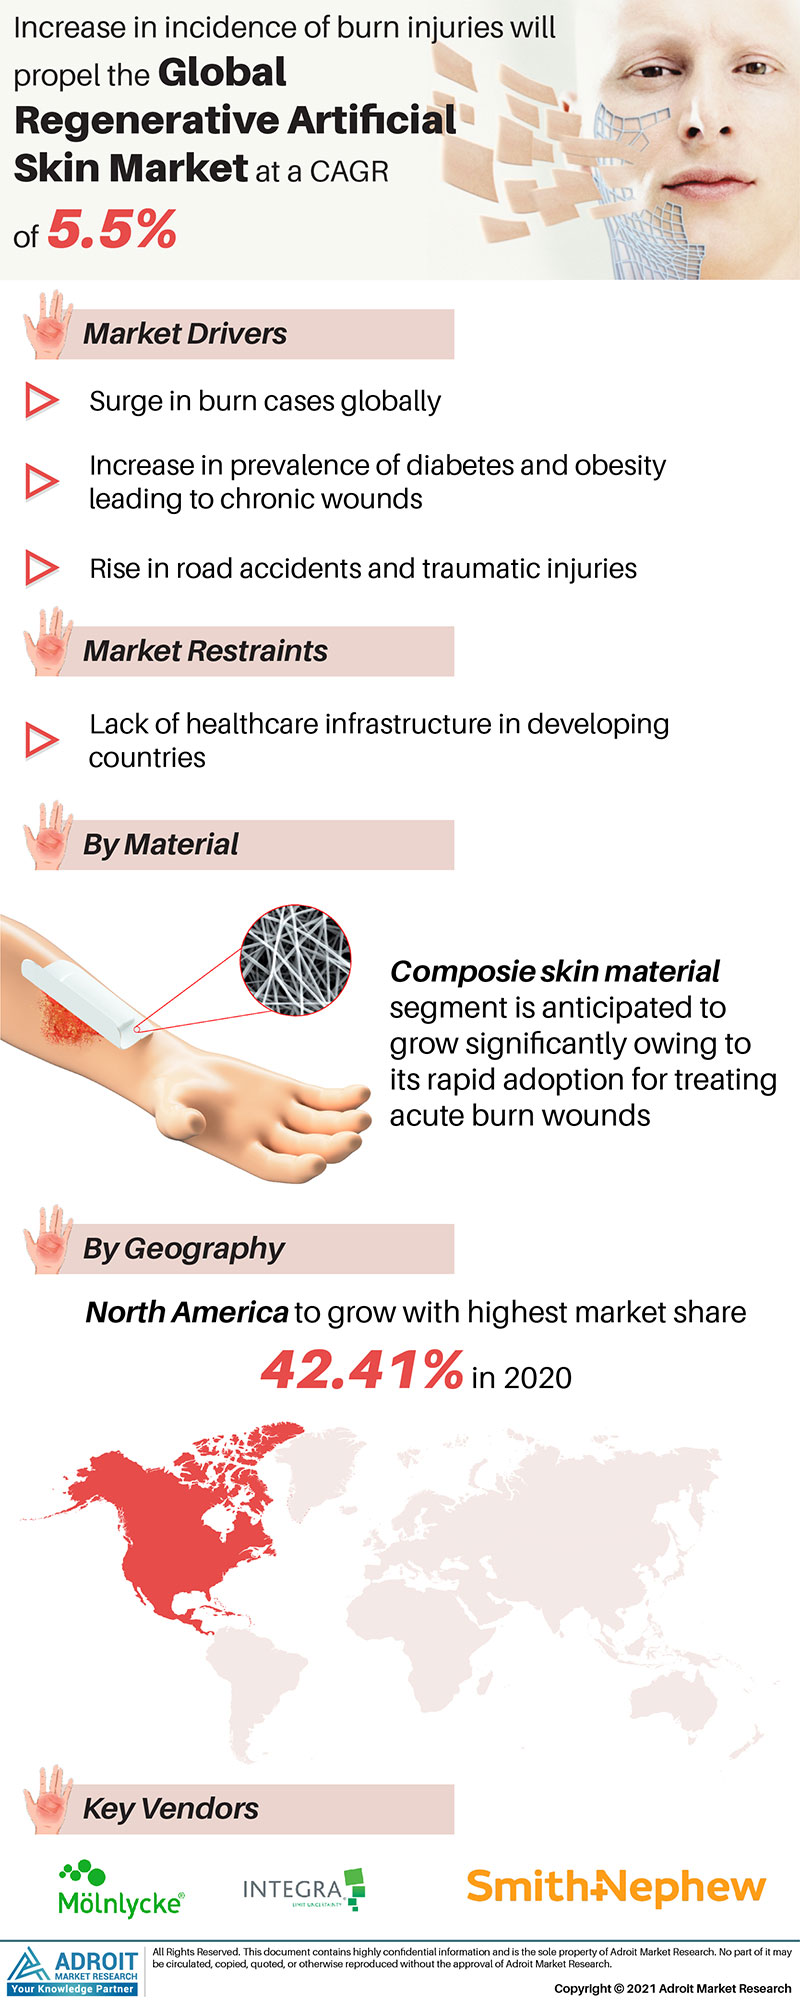 Regenerative Artificial Skin Market Trends and Forecasts Research Report